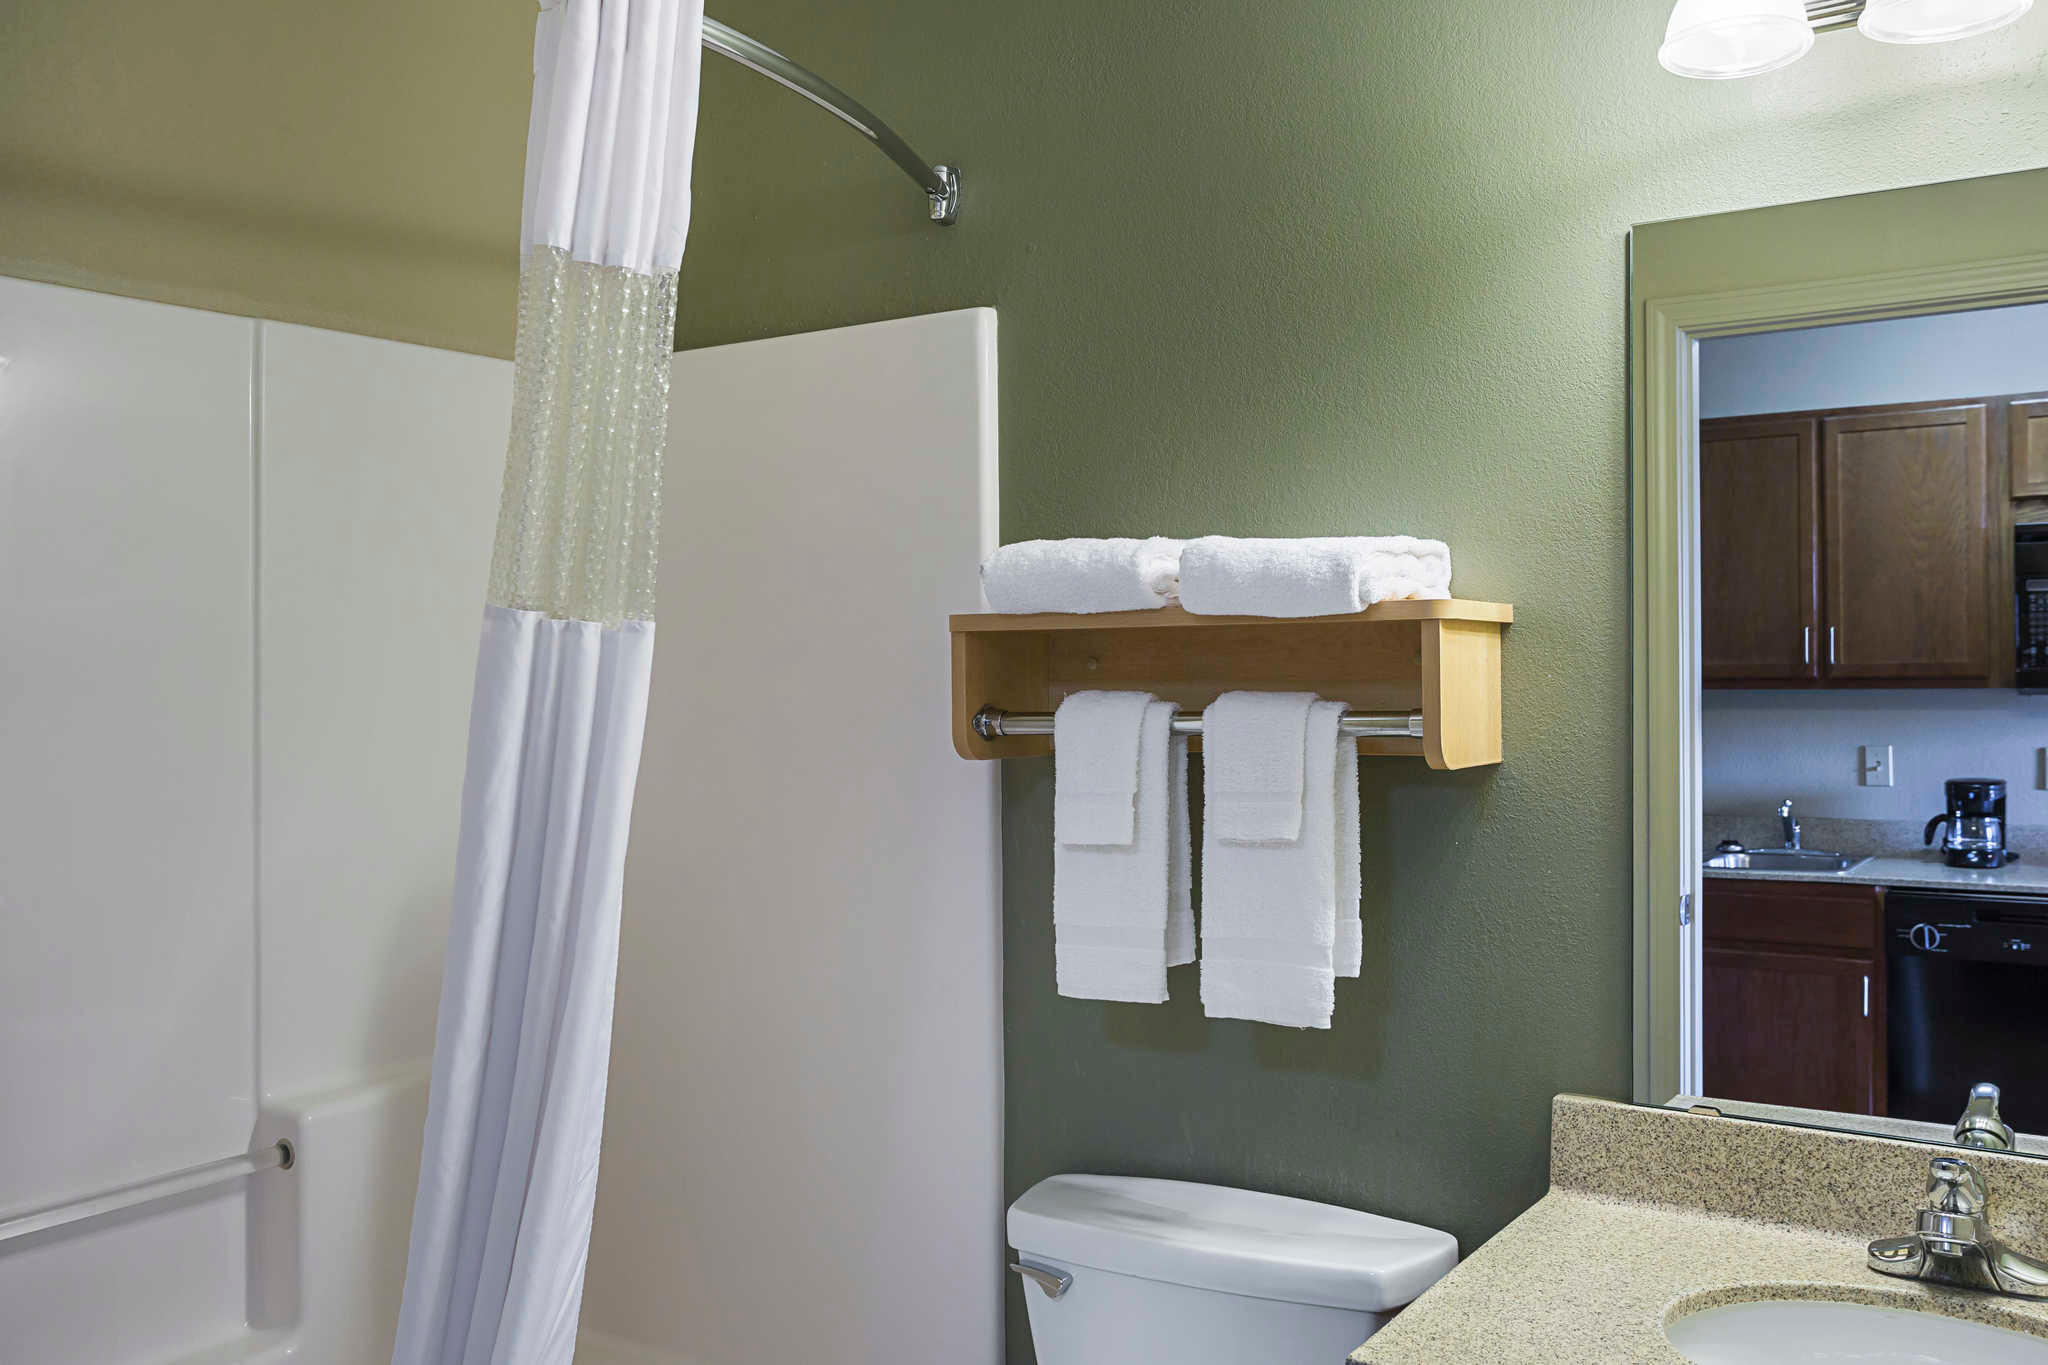 Suburban Extended Stay Hotel image 12